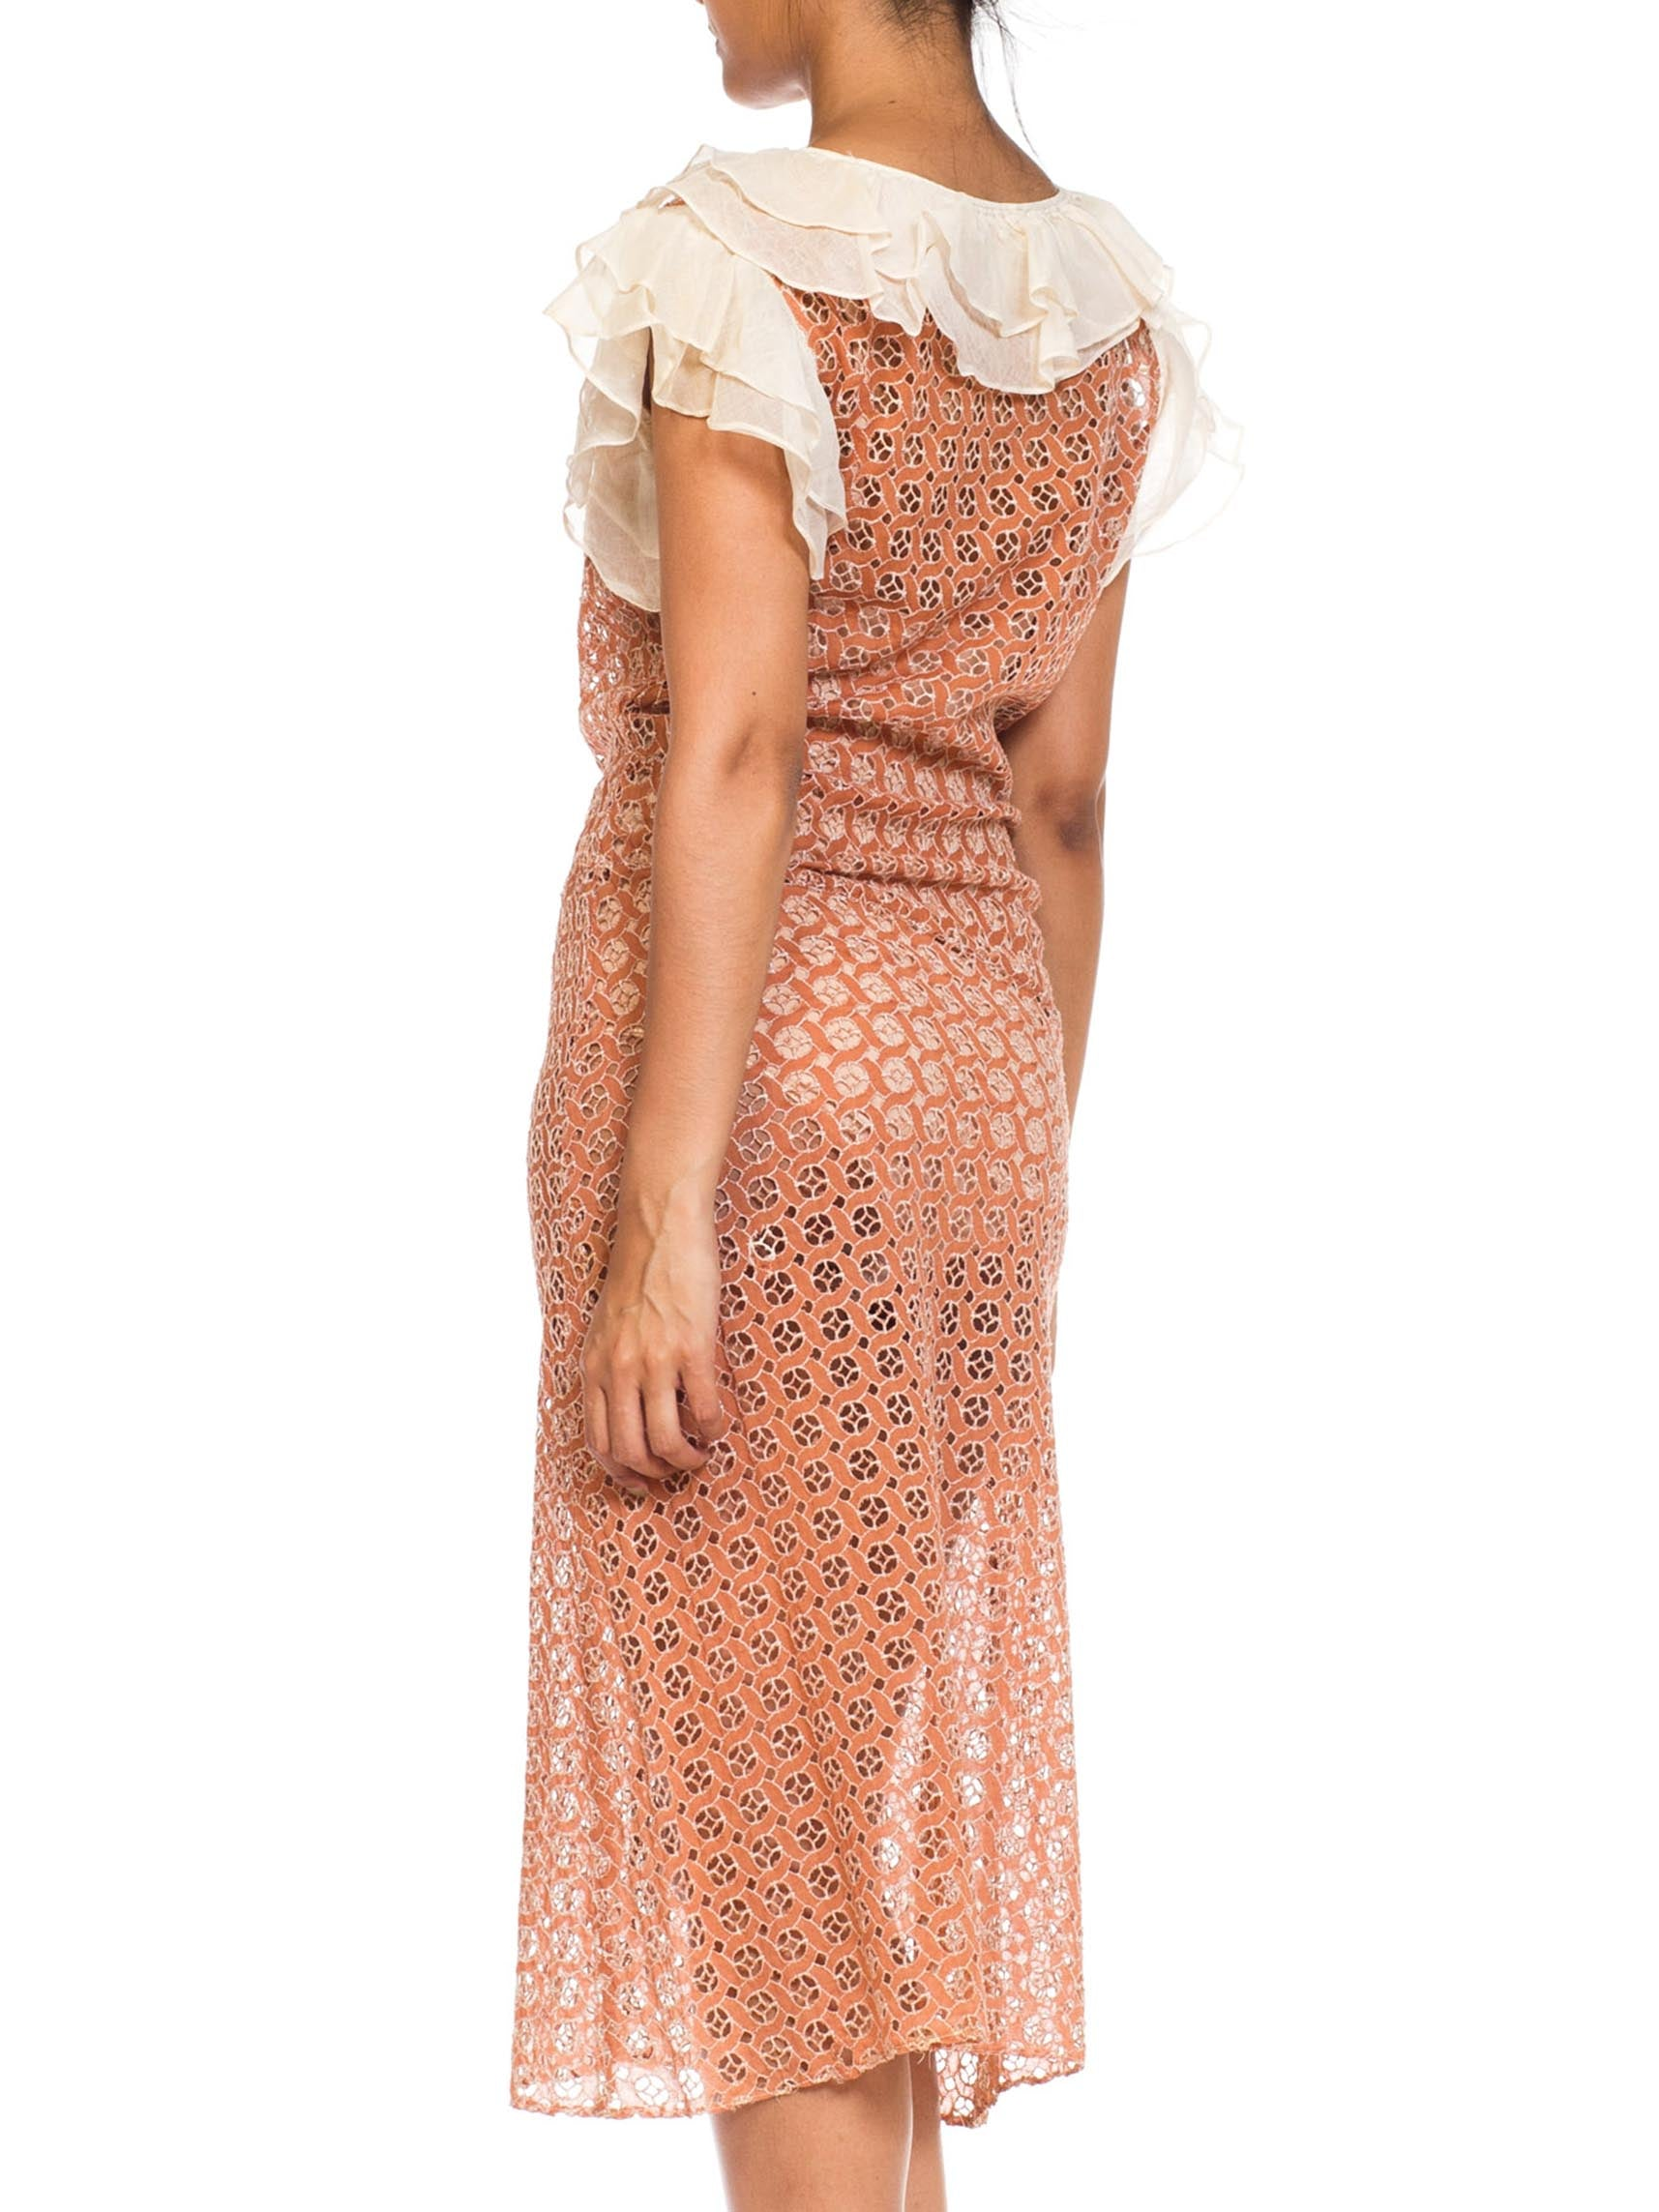 1930S Cotton Embroidered Geometric Eyelet Dress With Organdy Ruffles